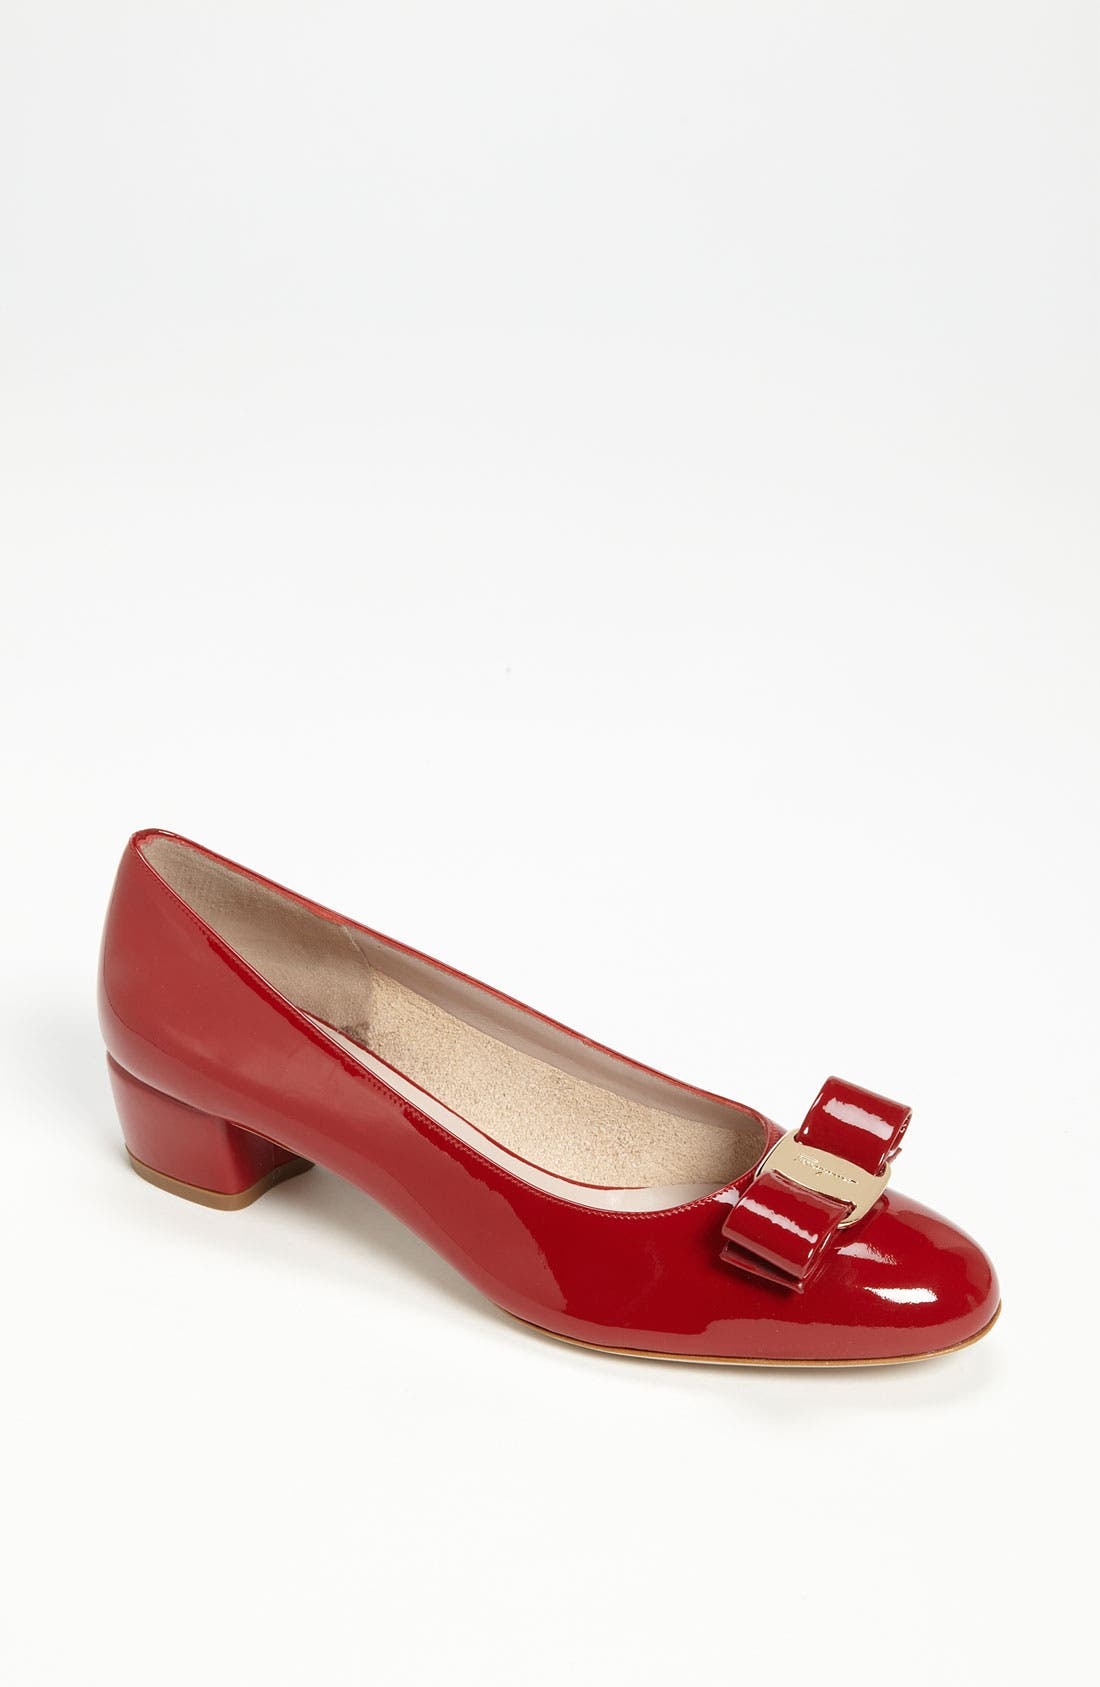 Alternate Image 1 Selected - Salvatore Ferragamo 'Vara 1' Pump